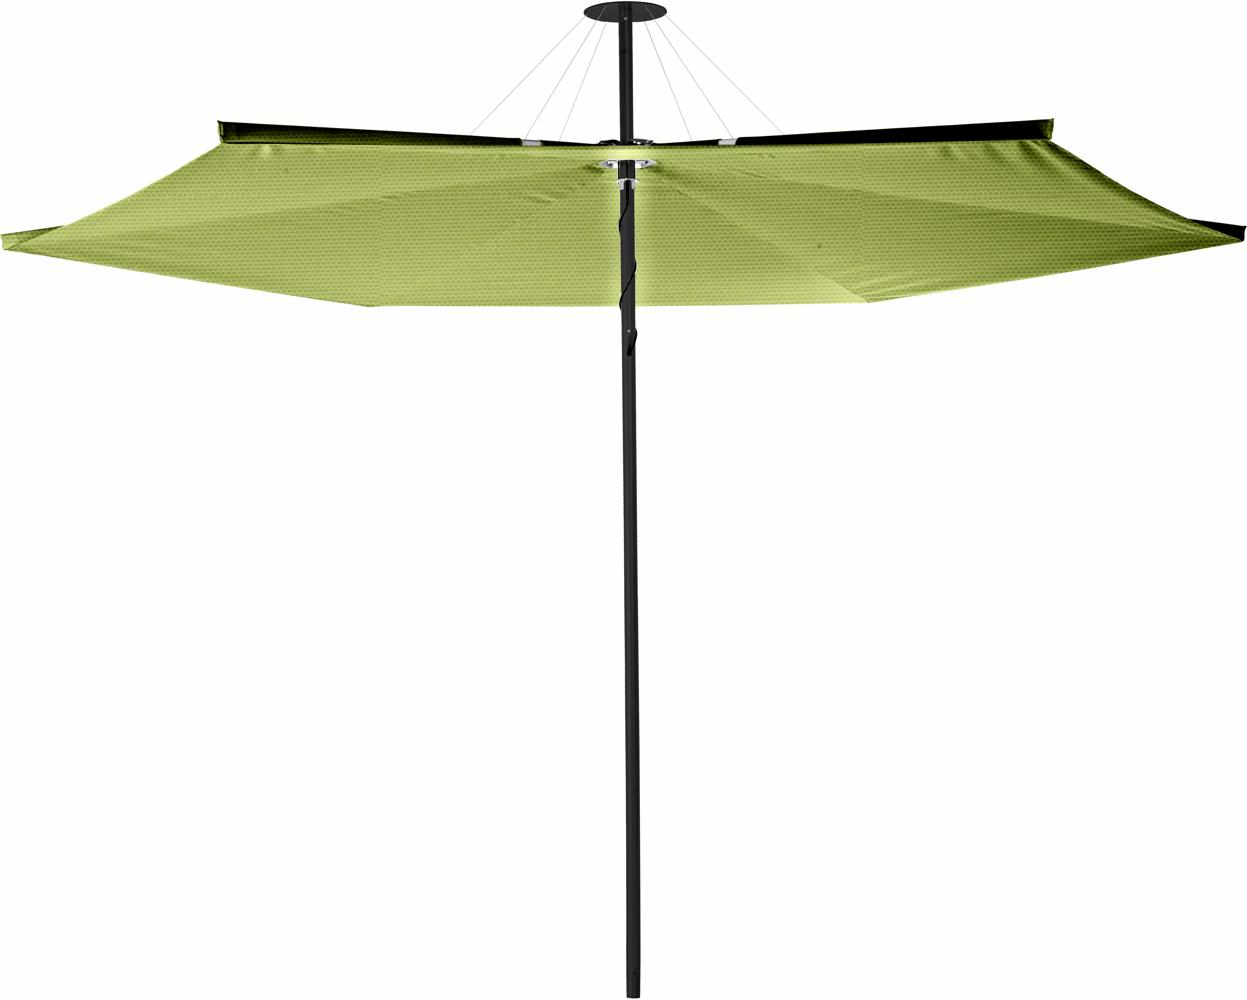 Infina center post umbrella, 3 m round, with frame in Dusk and Solidum Lichen canopy.